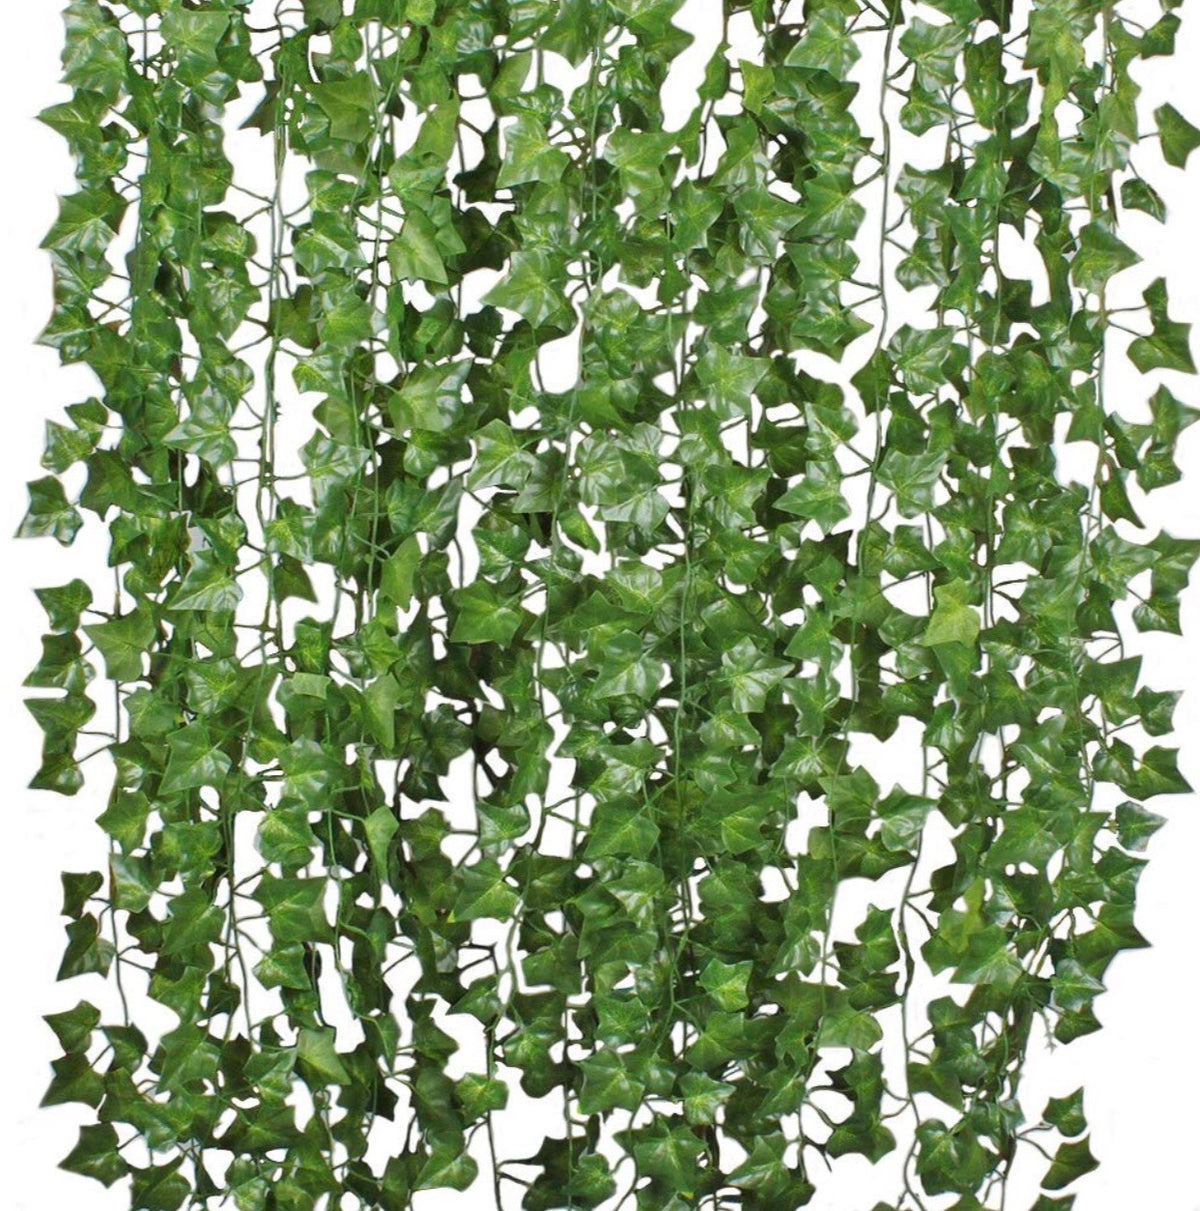 Green Vines - Platinum Prop Rentals